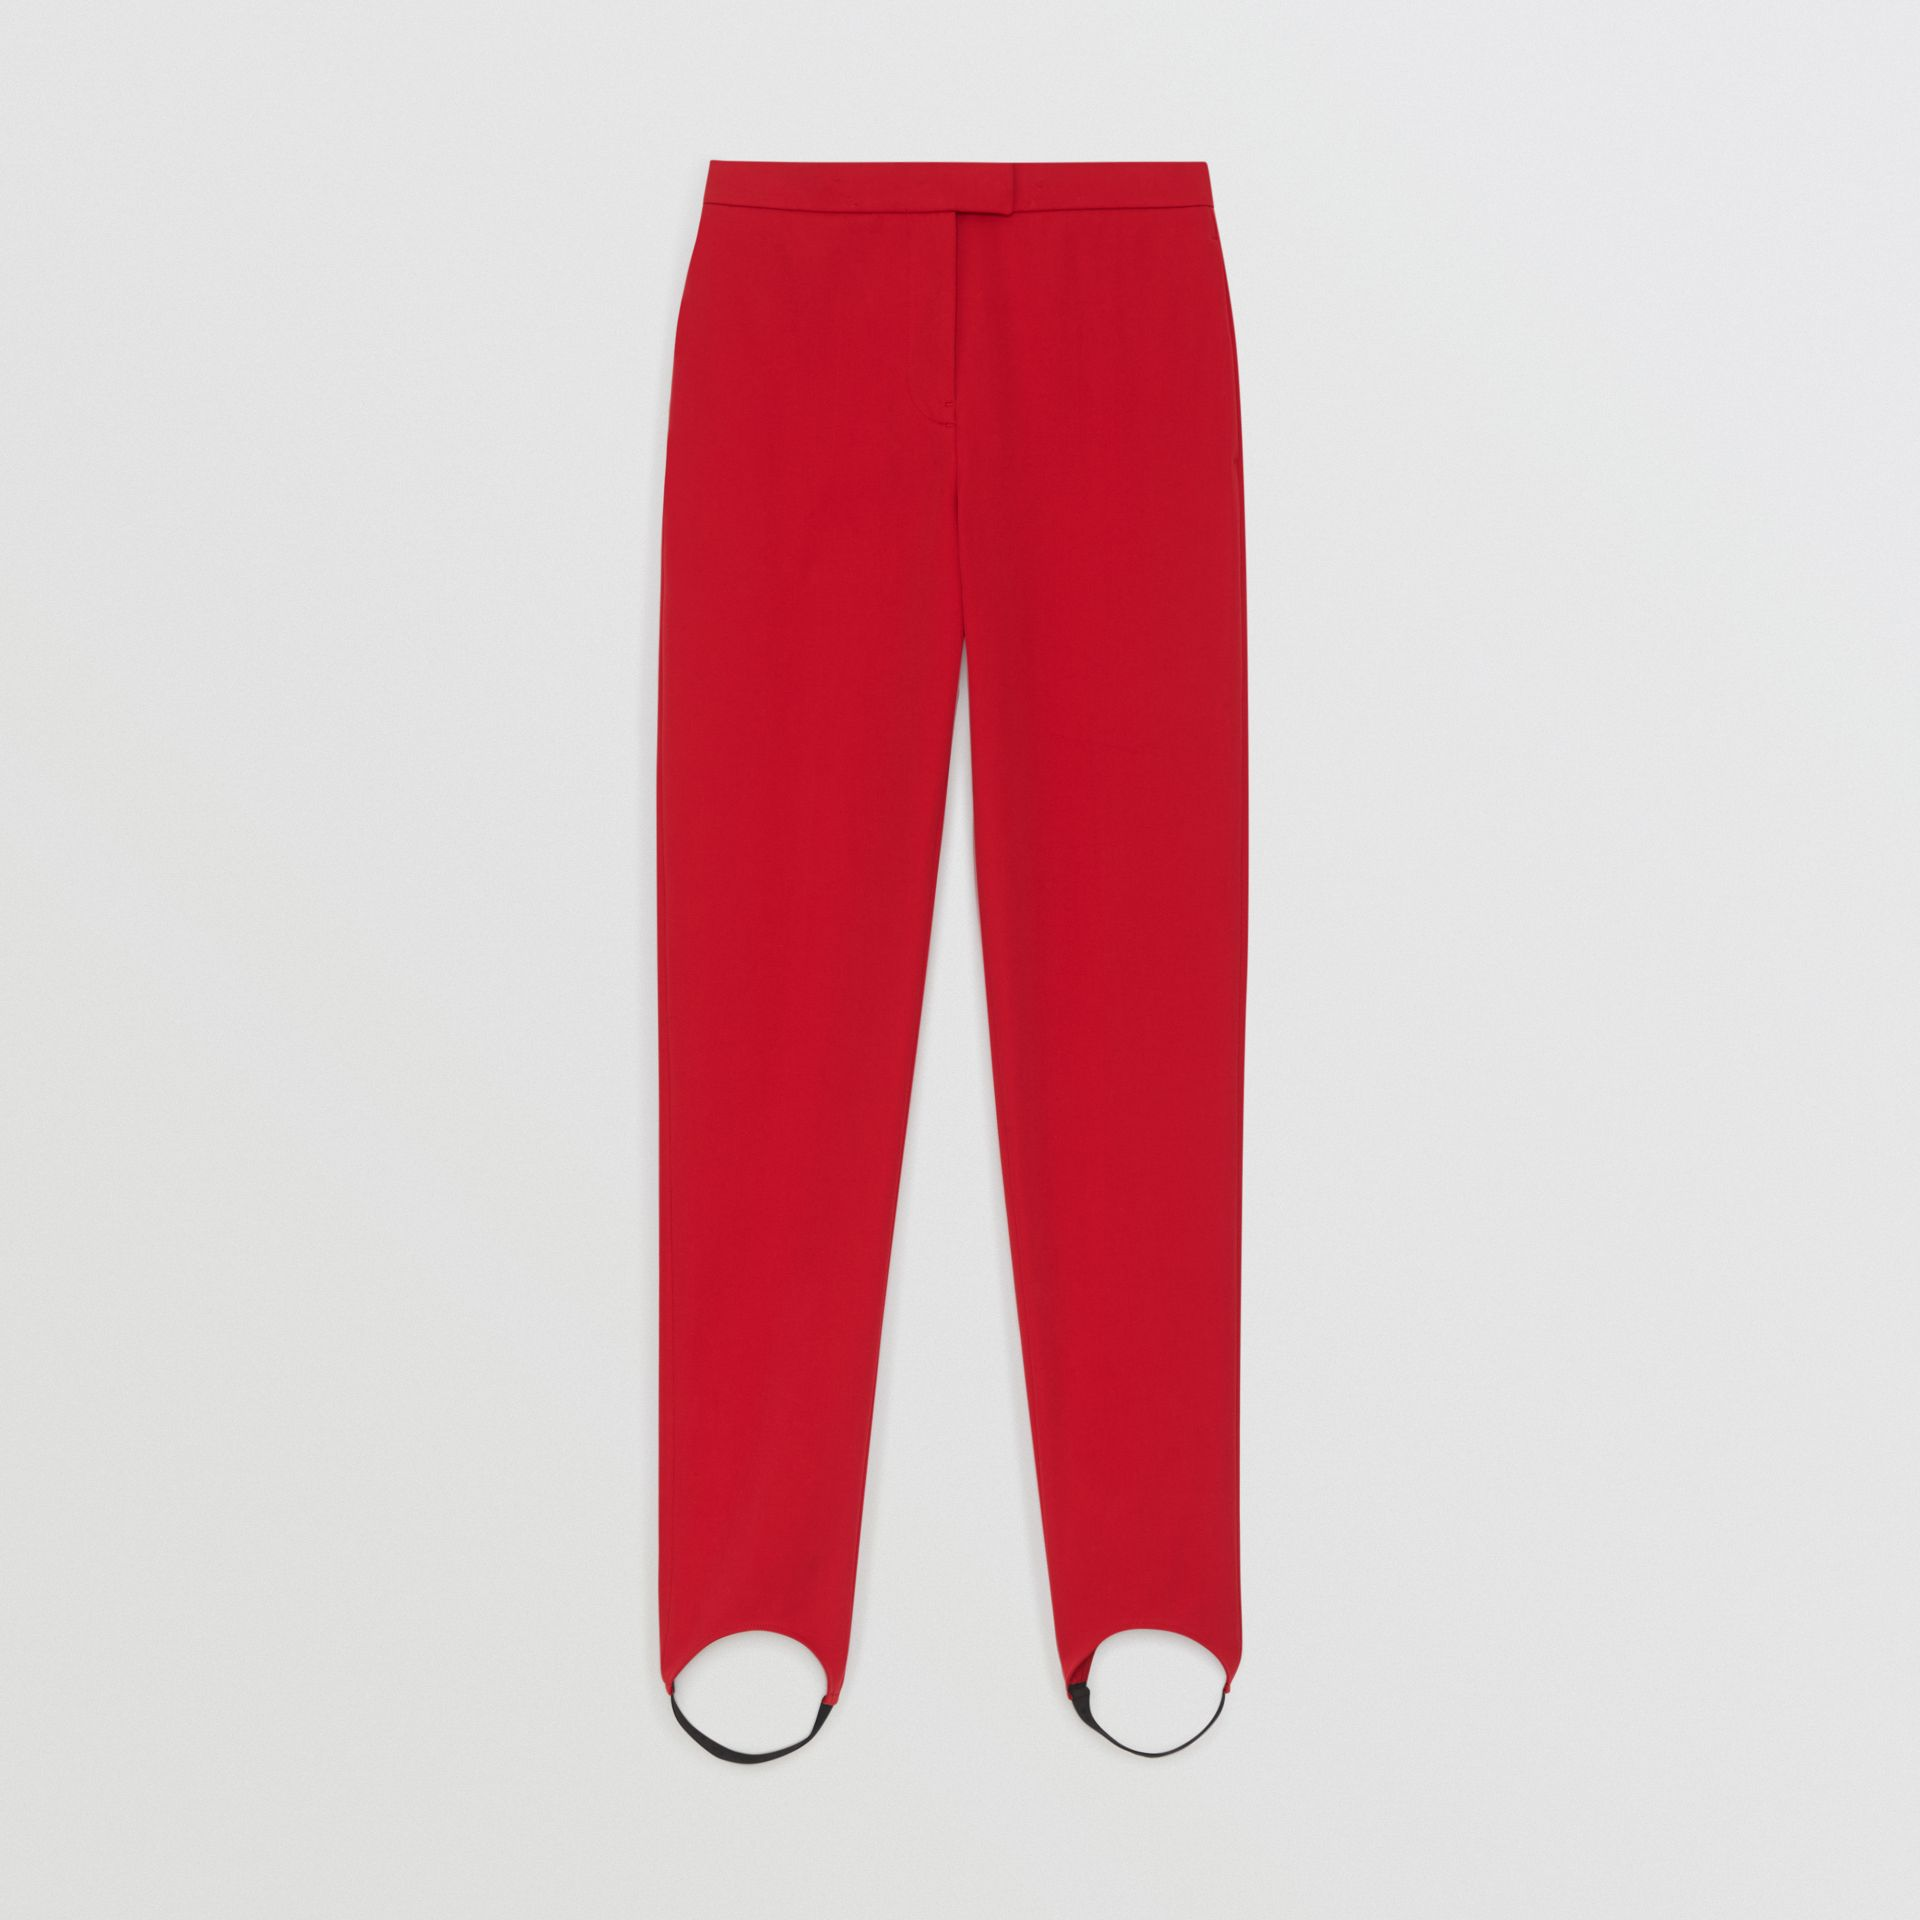 Cotton Blend Tailored Jodhpurs in Bright Red - Women | Burberry Canada - gallery image 3